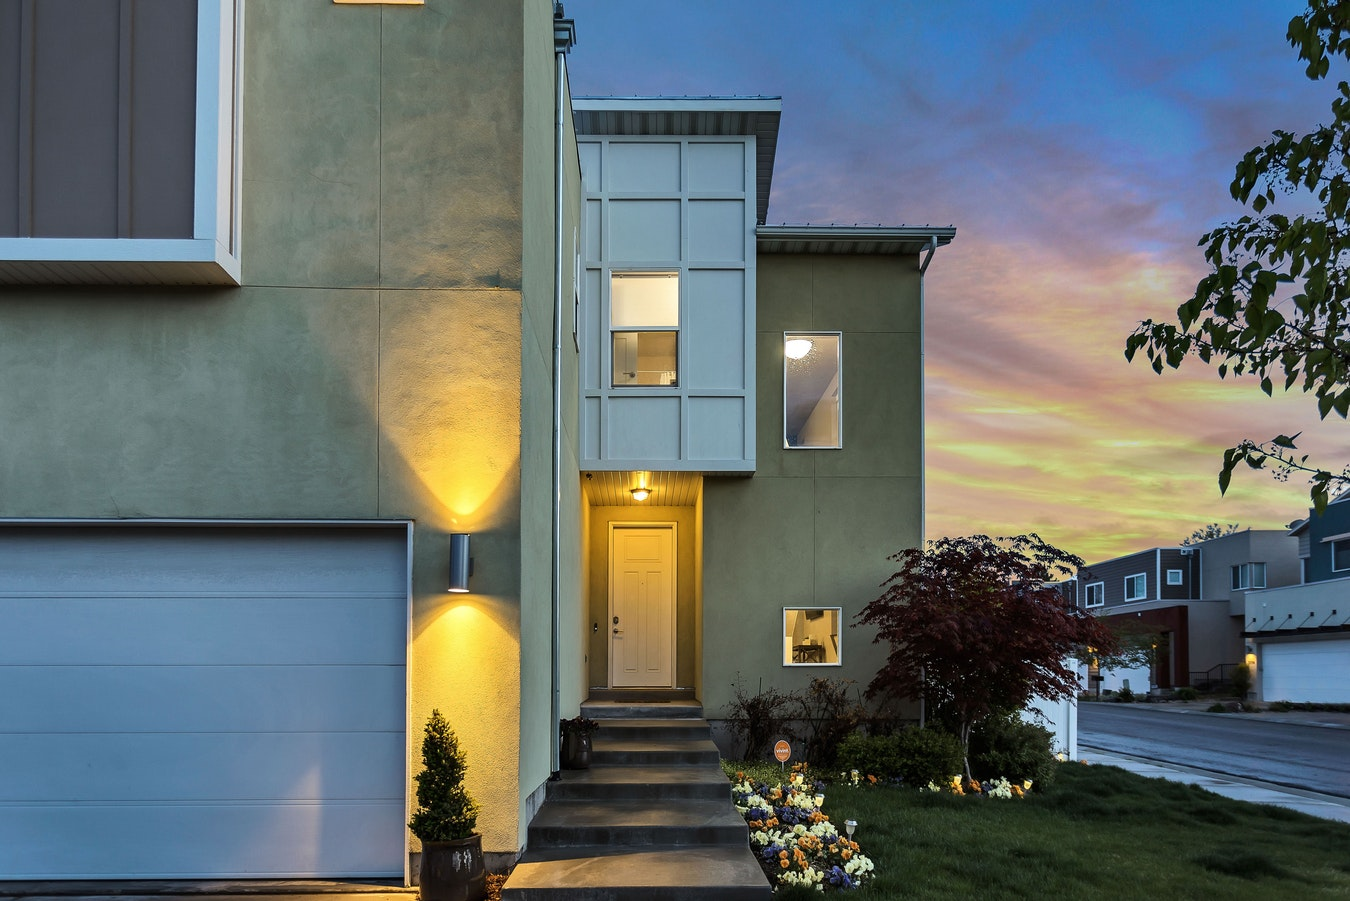 Invest in Curb Appeal to Sell Your Home Quicker and for More Money